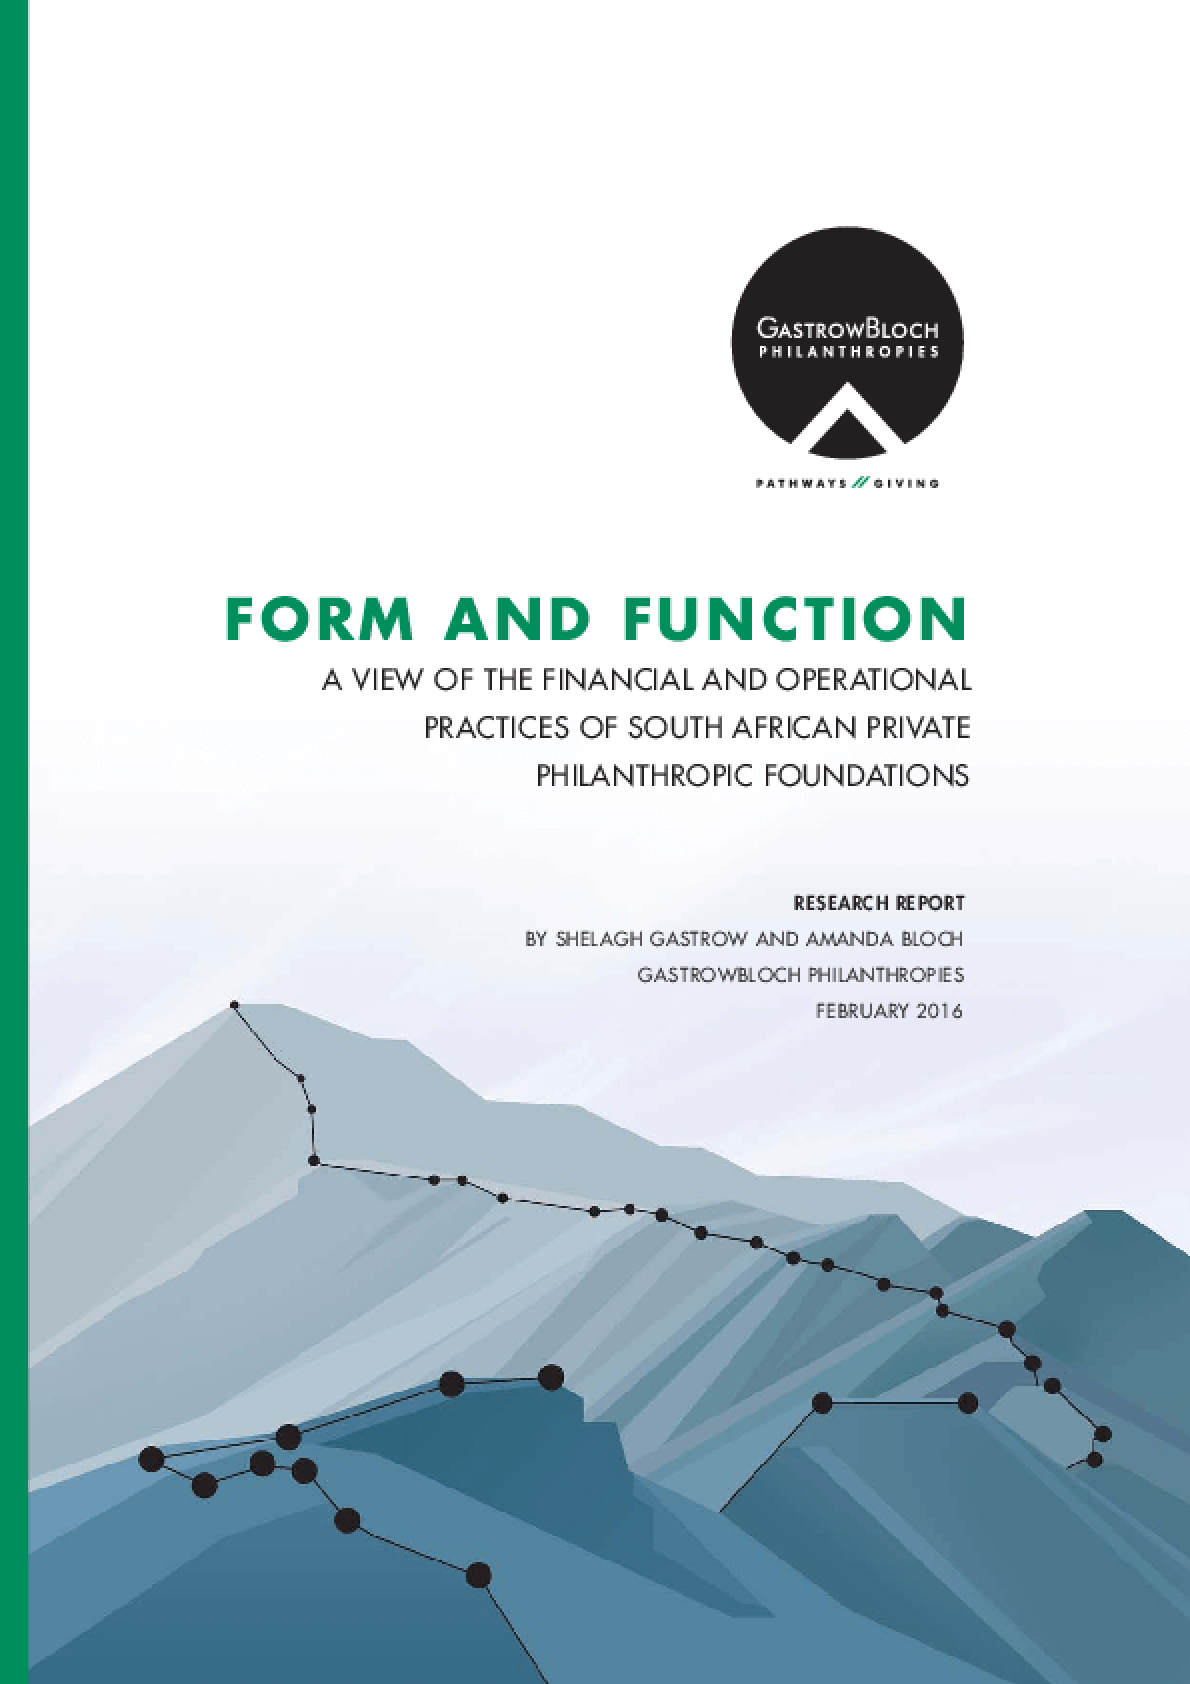 Form and Function: a view of the financial and operational practices of south african private philanthropic foundations